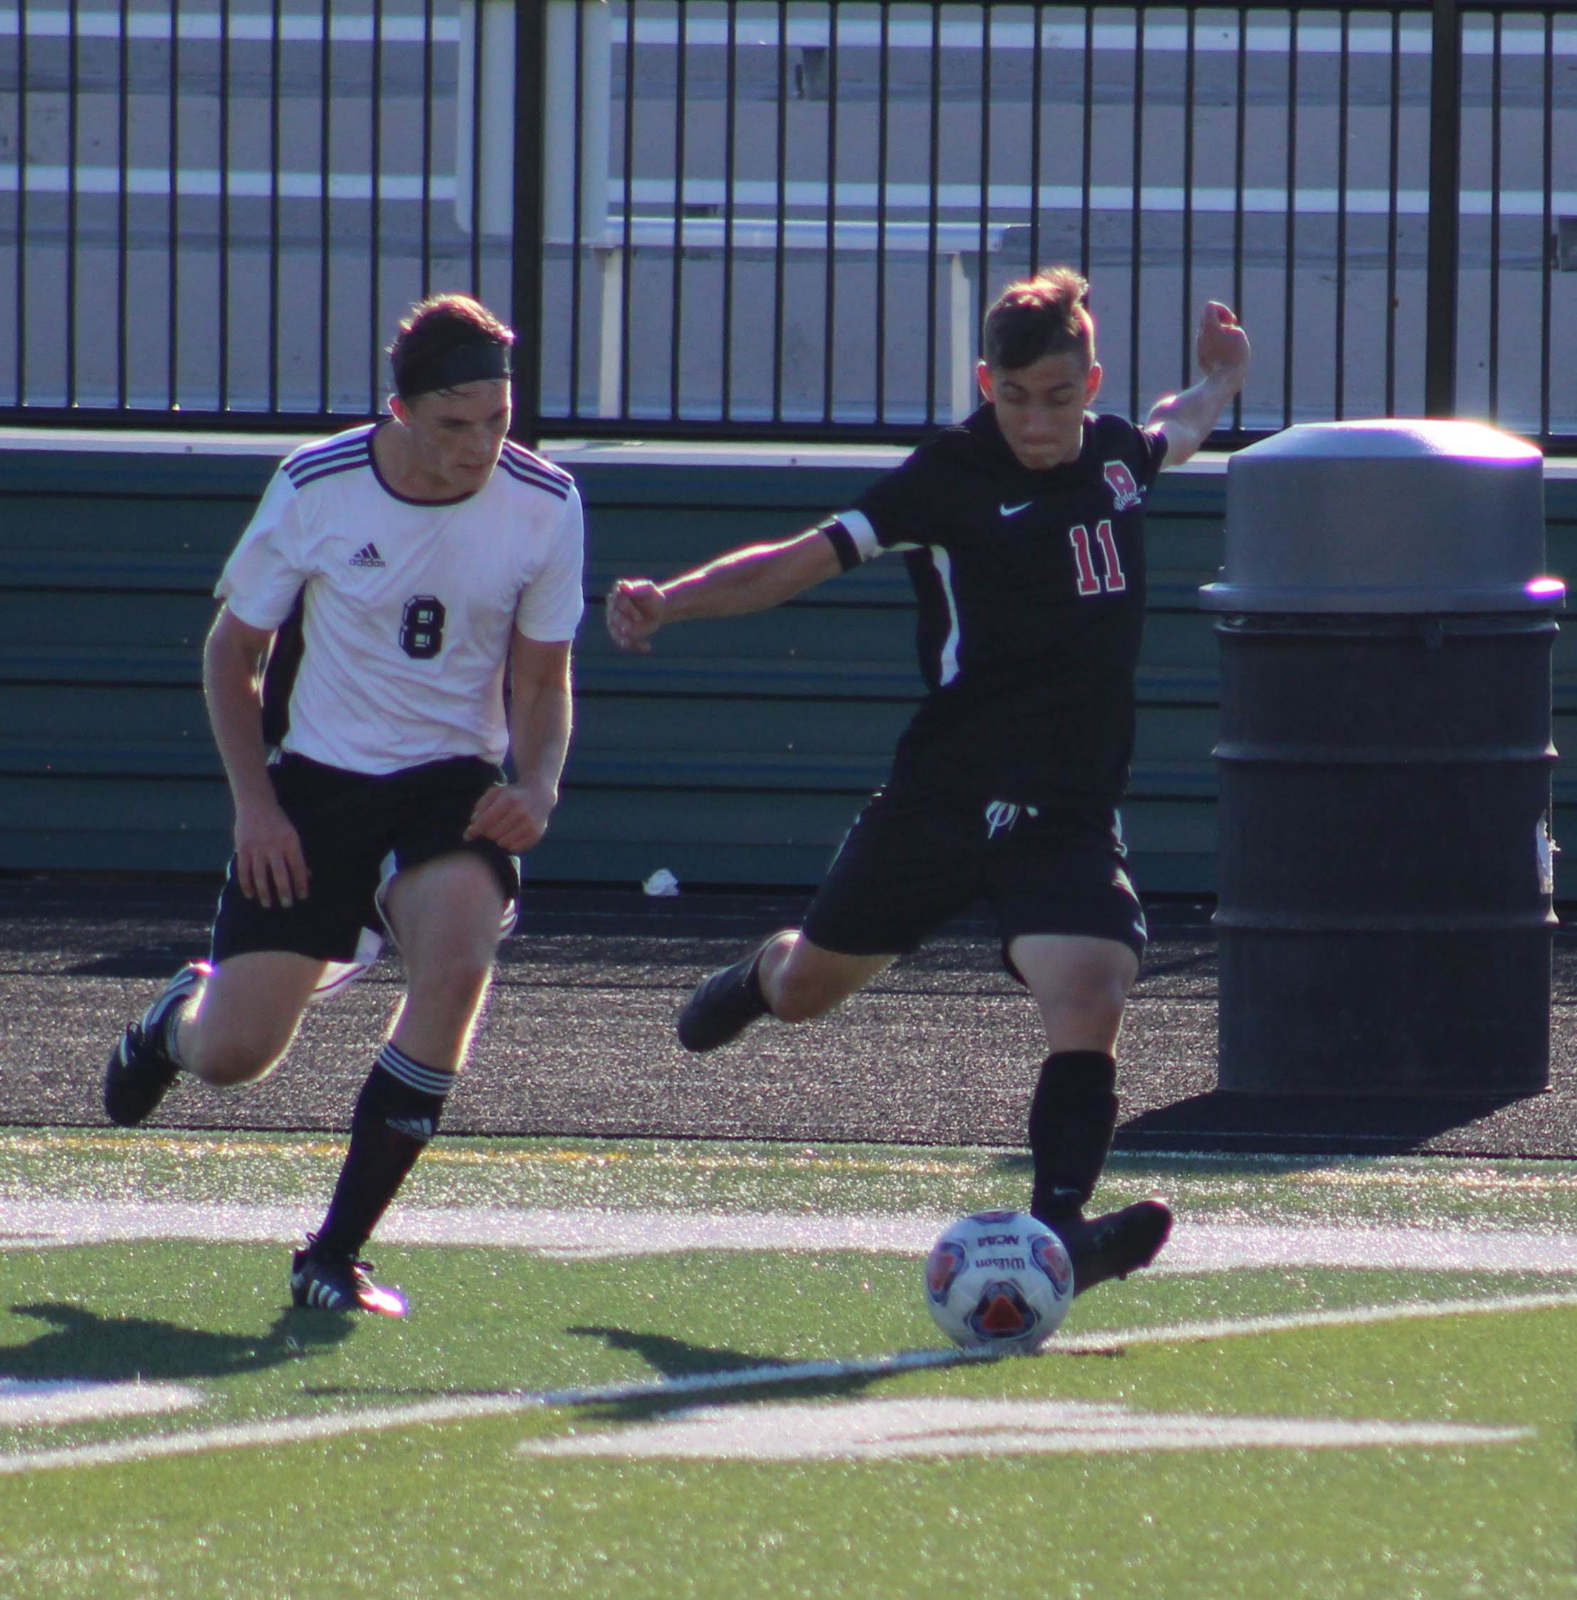 Action Pics of Redmen Boys Soccer vs Hearts